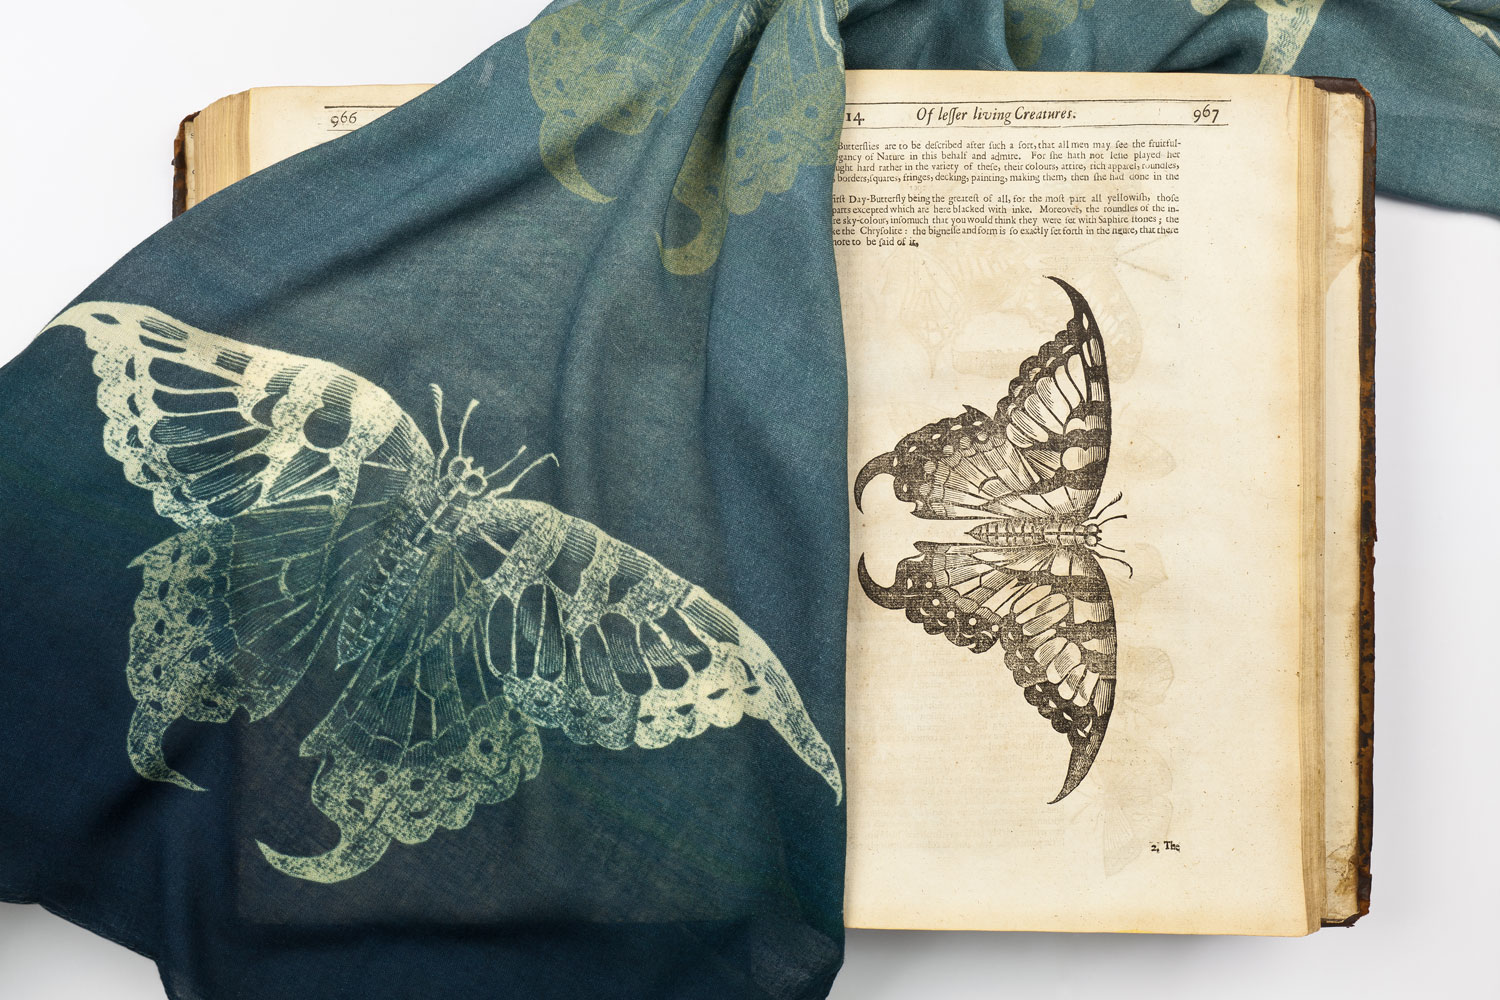 photograph of dark blue scarf with gold butterfly design with book showing same illustration